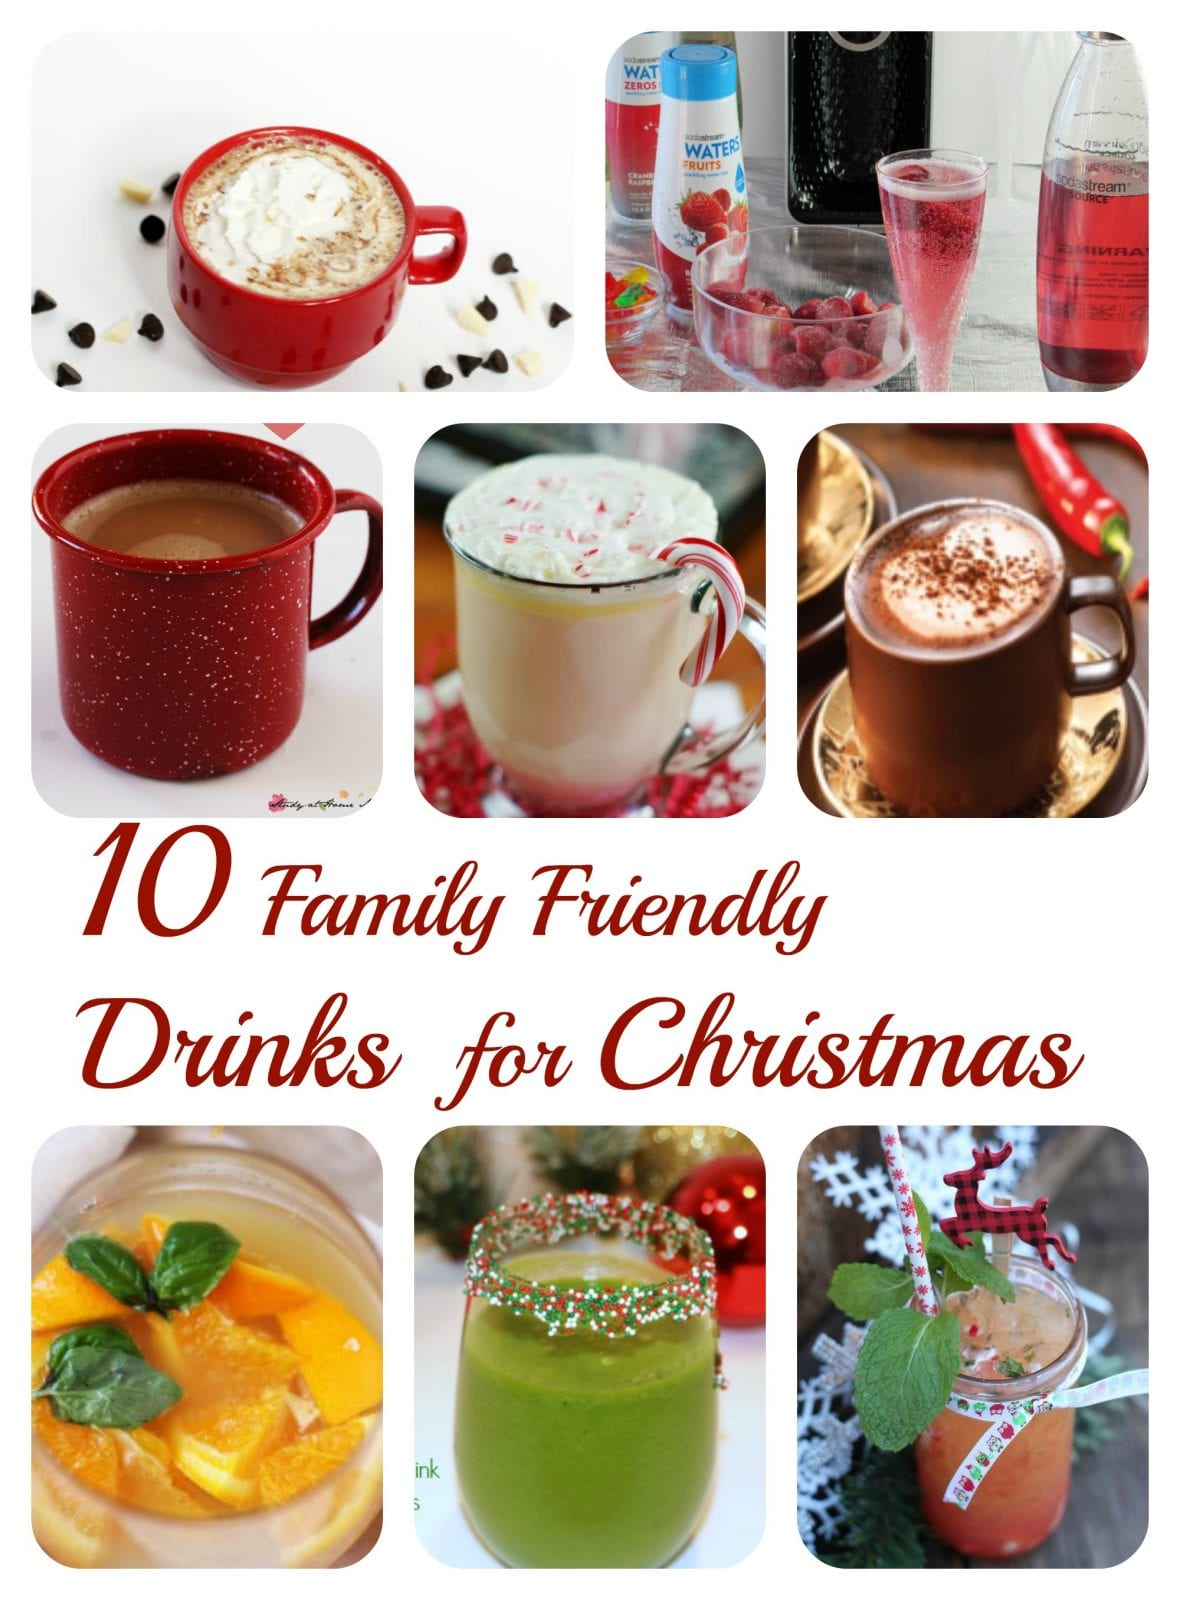 10 Family Friendly Drinks for Christmas